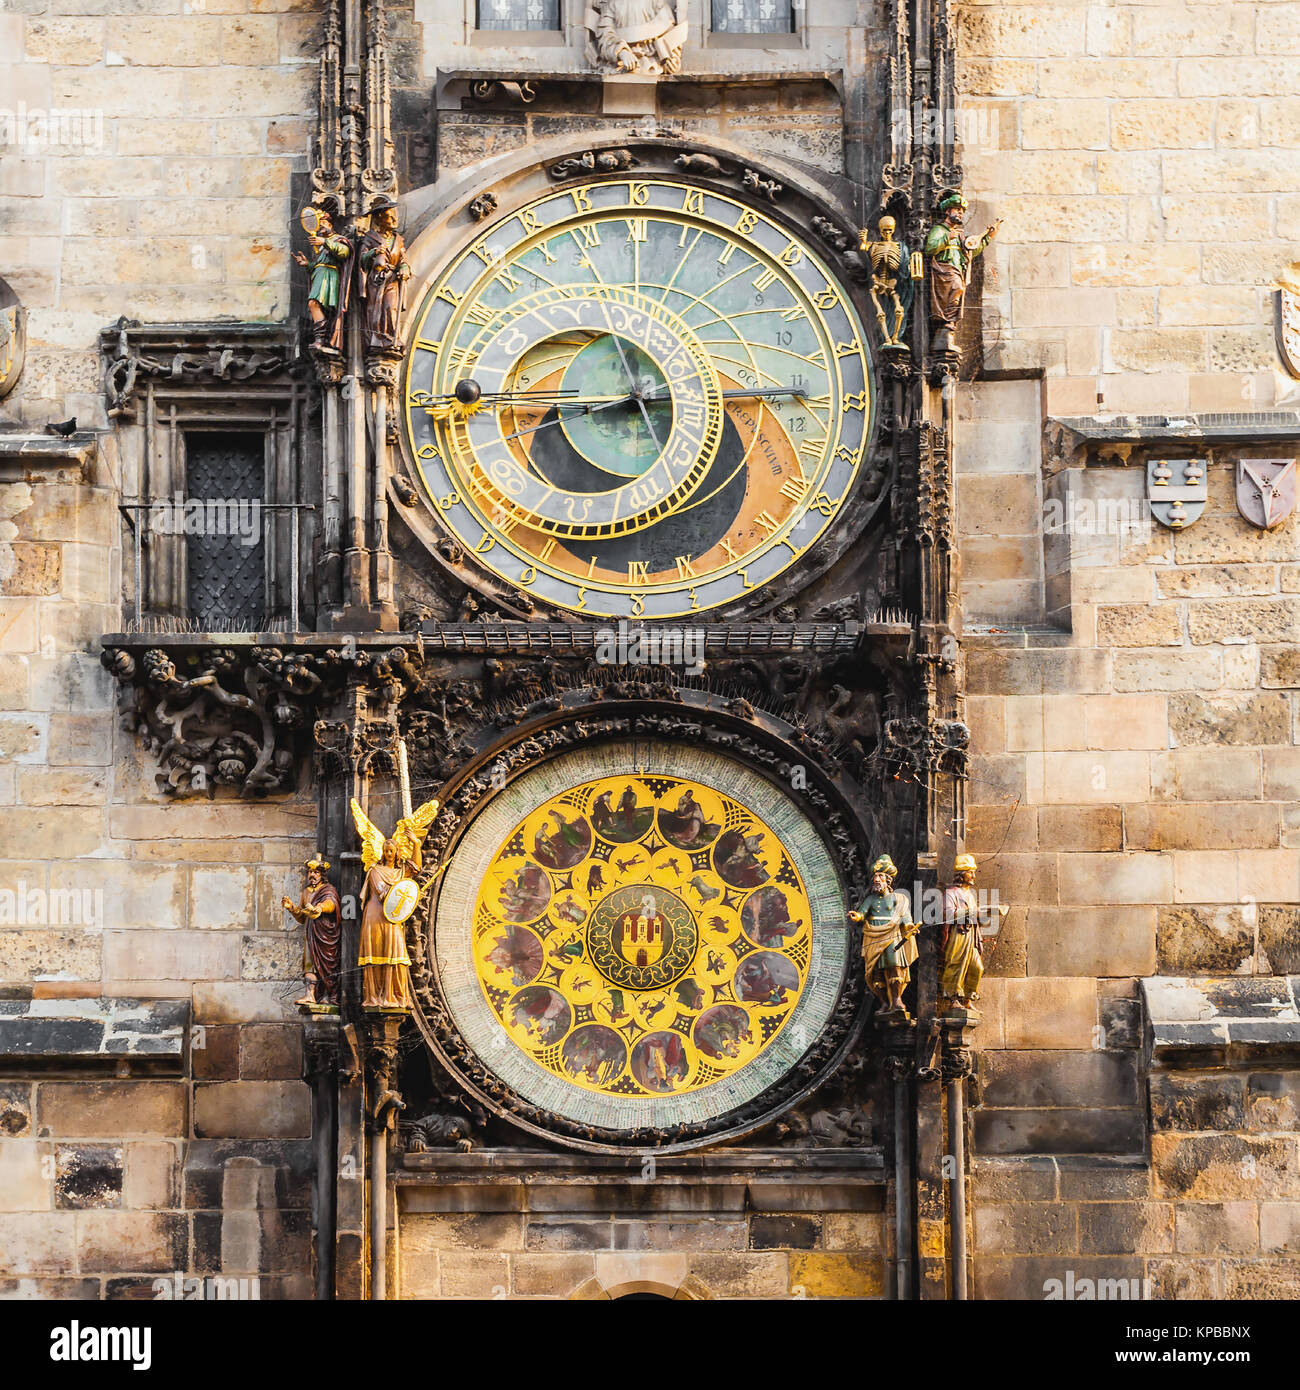 Prague astronomical clock in Old Town Square - Stock Image